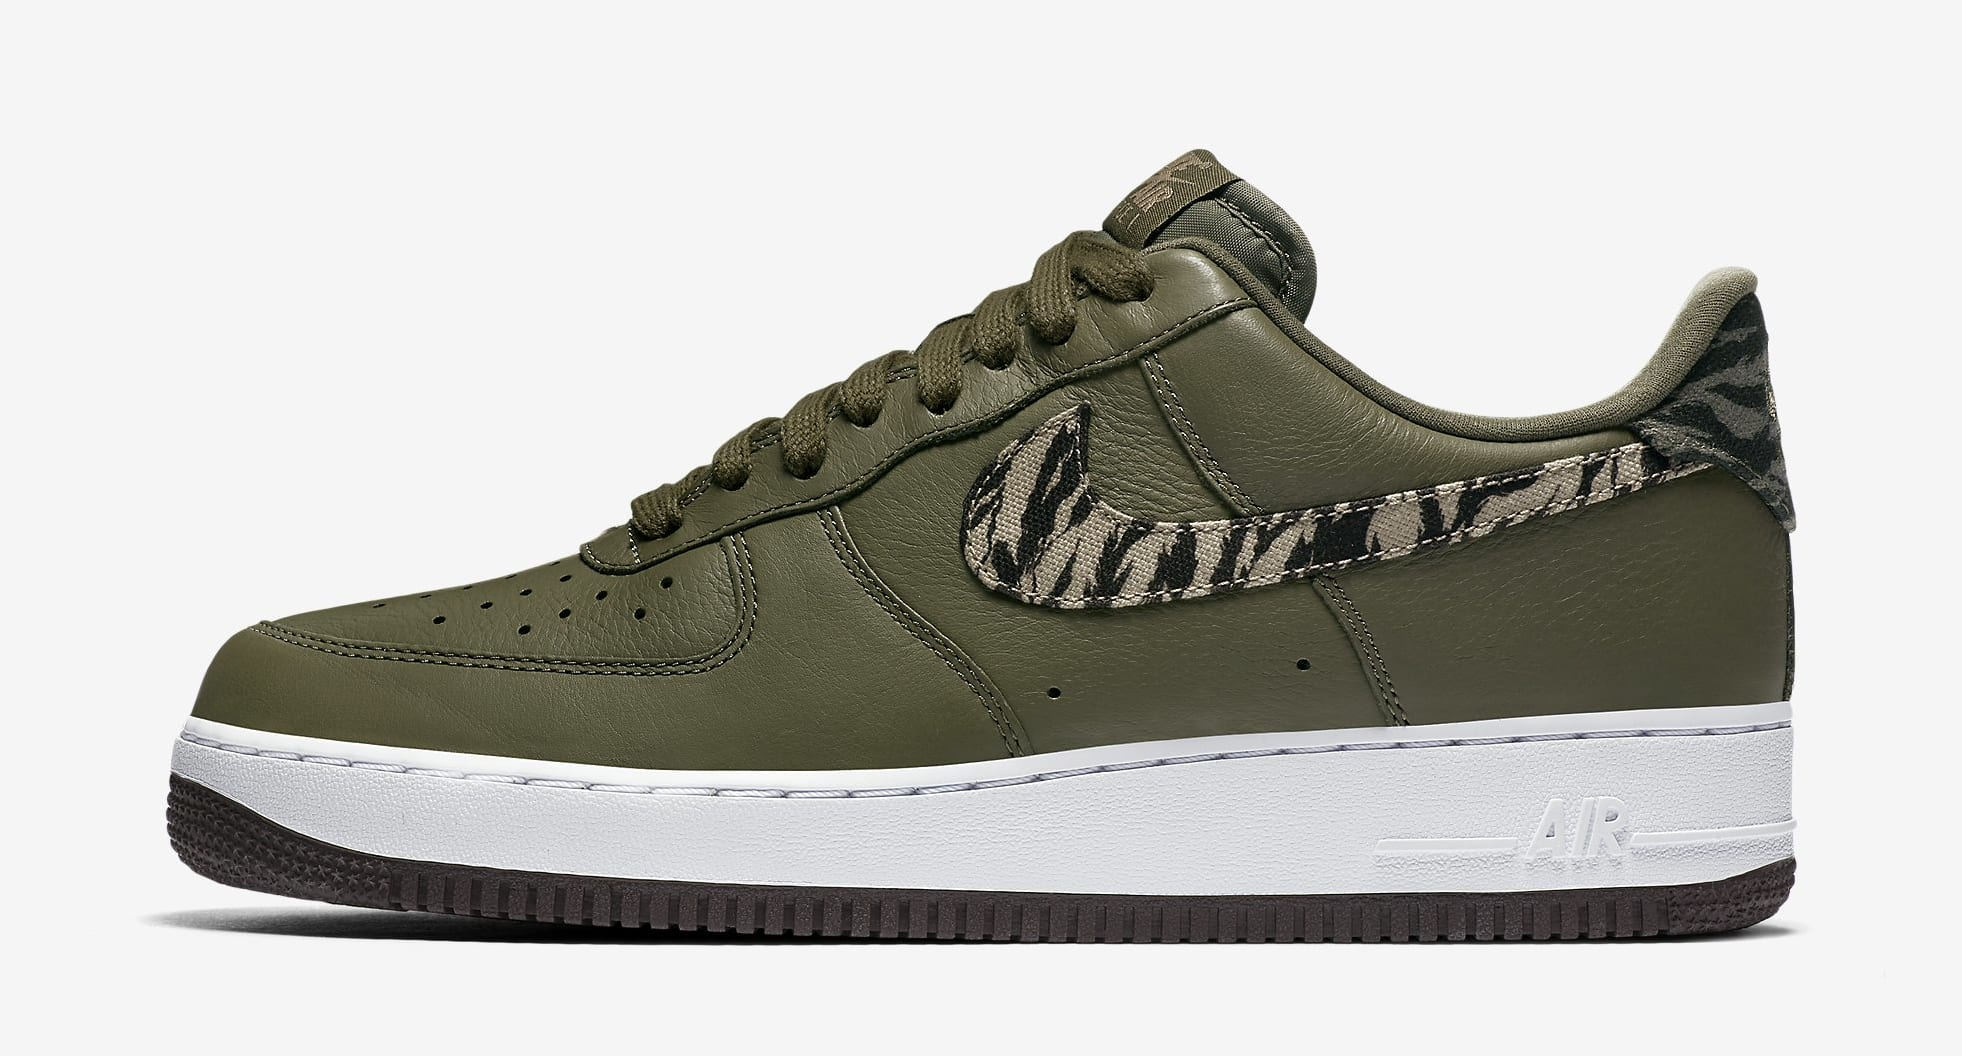 Nike Air Force 1 Low AQ4131-200 (Lateral)